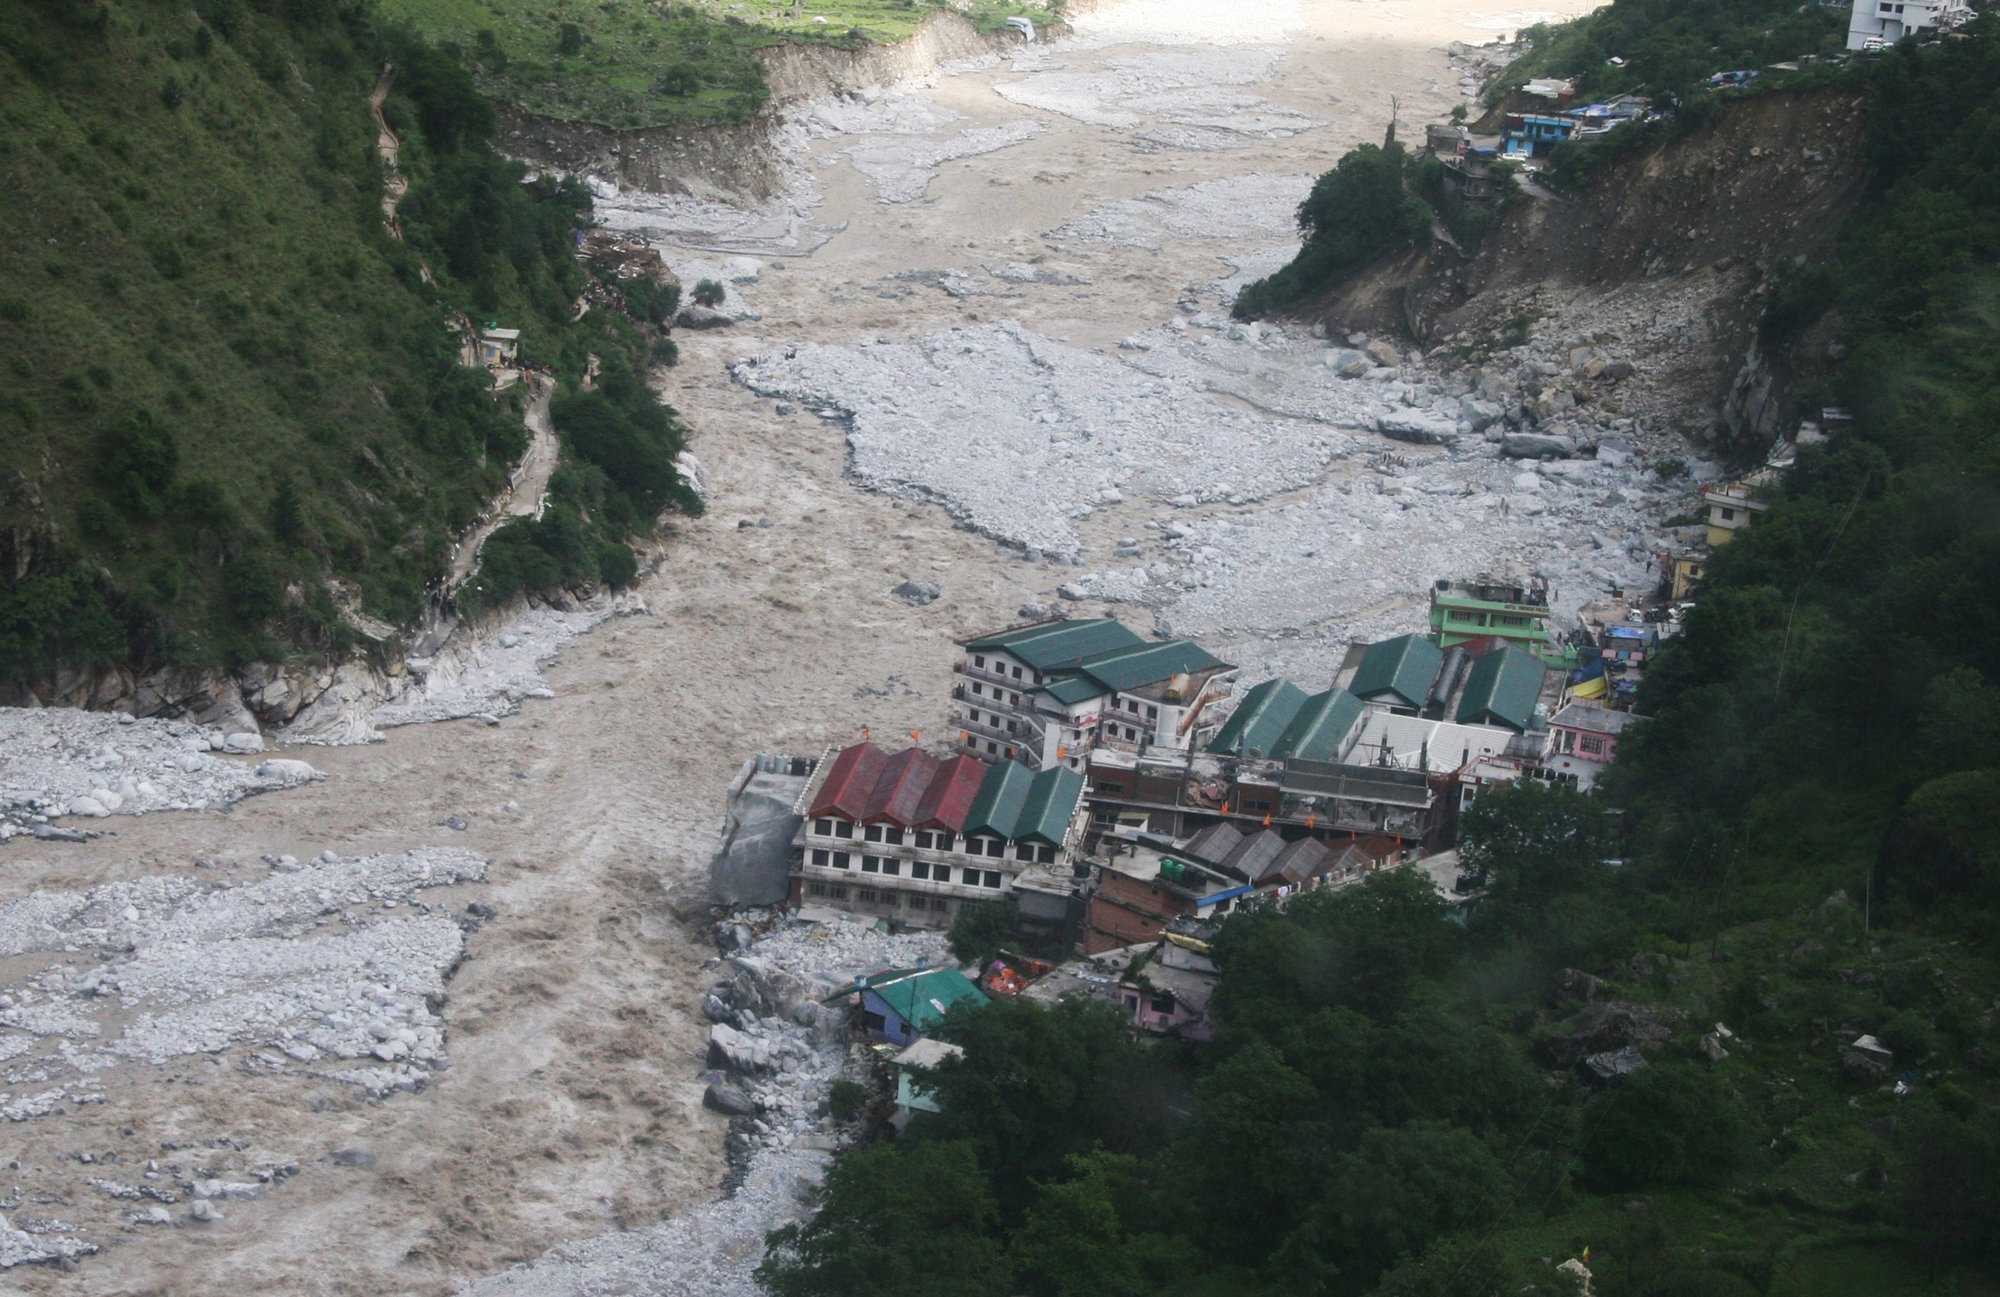 Many such cities lie precariously on the course of himalayan rivers